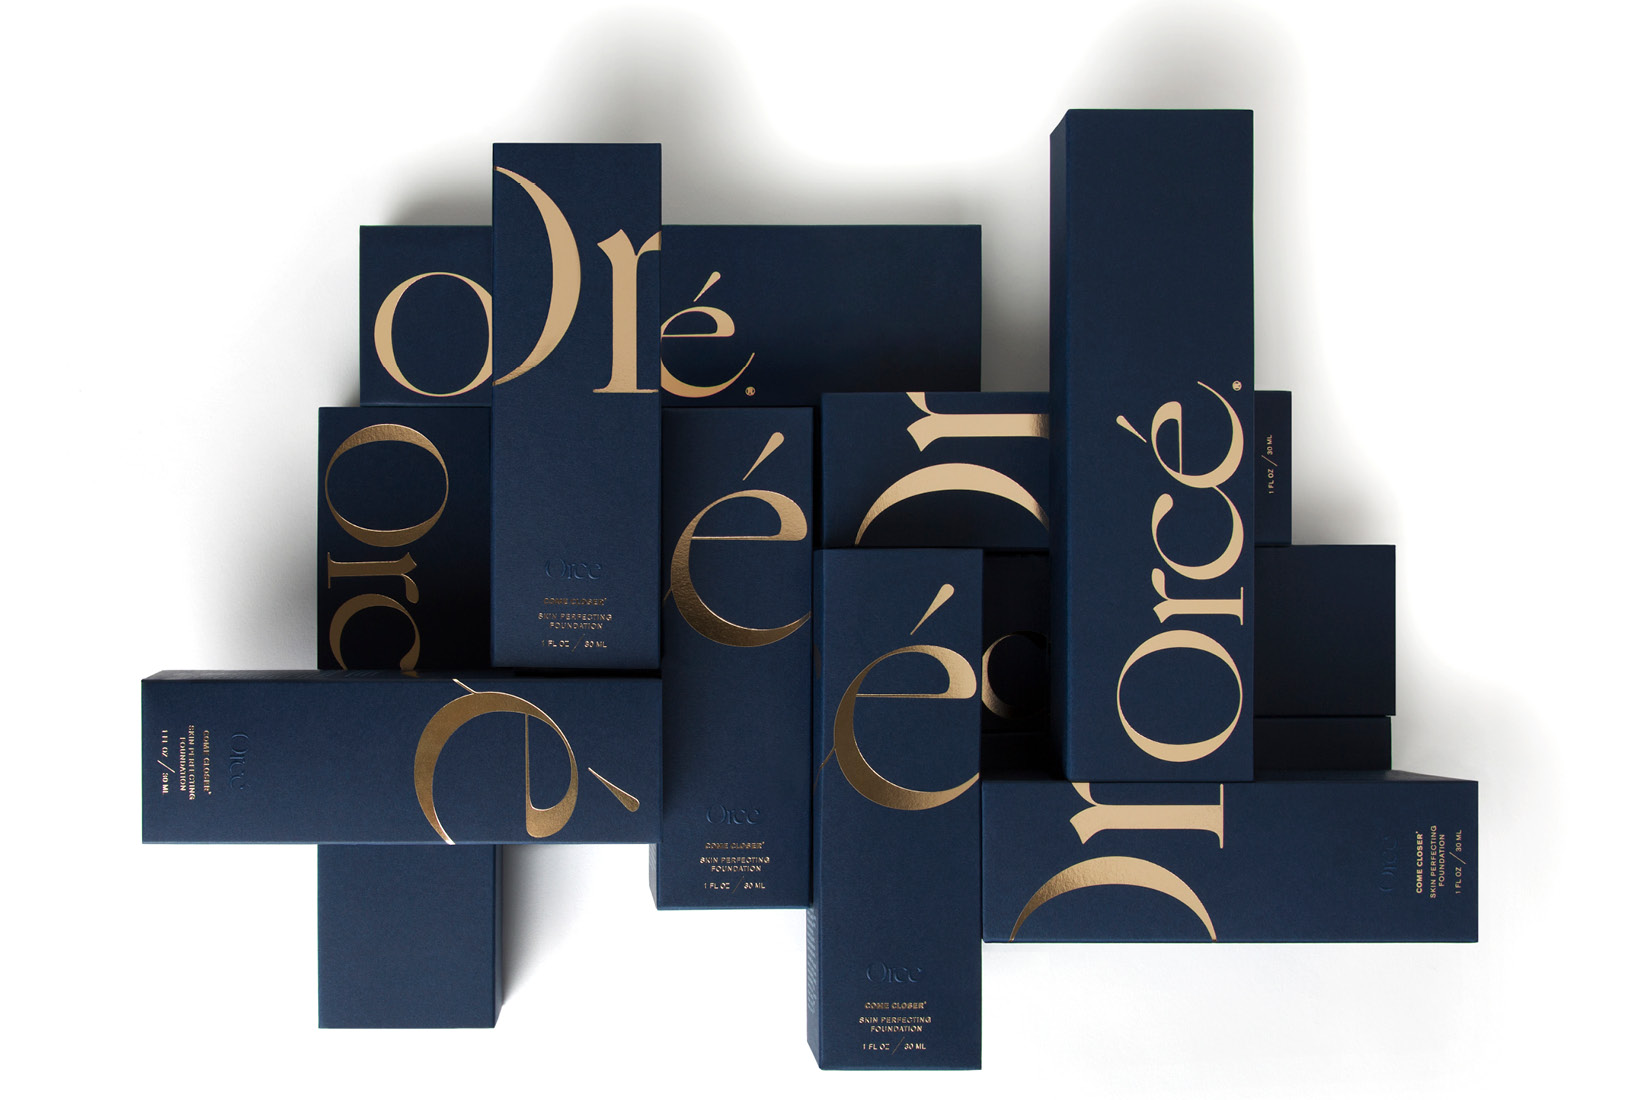 Selection of shades of Orce's foundations.